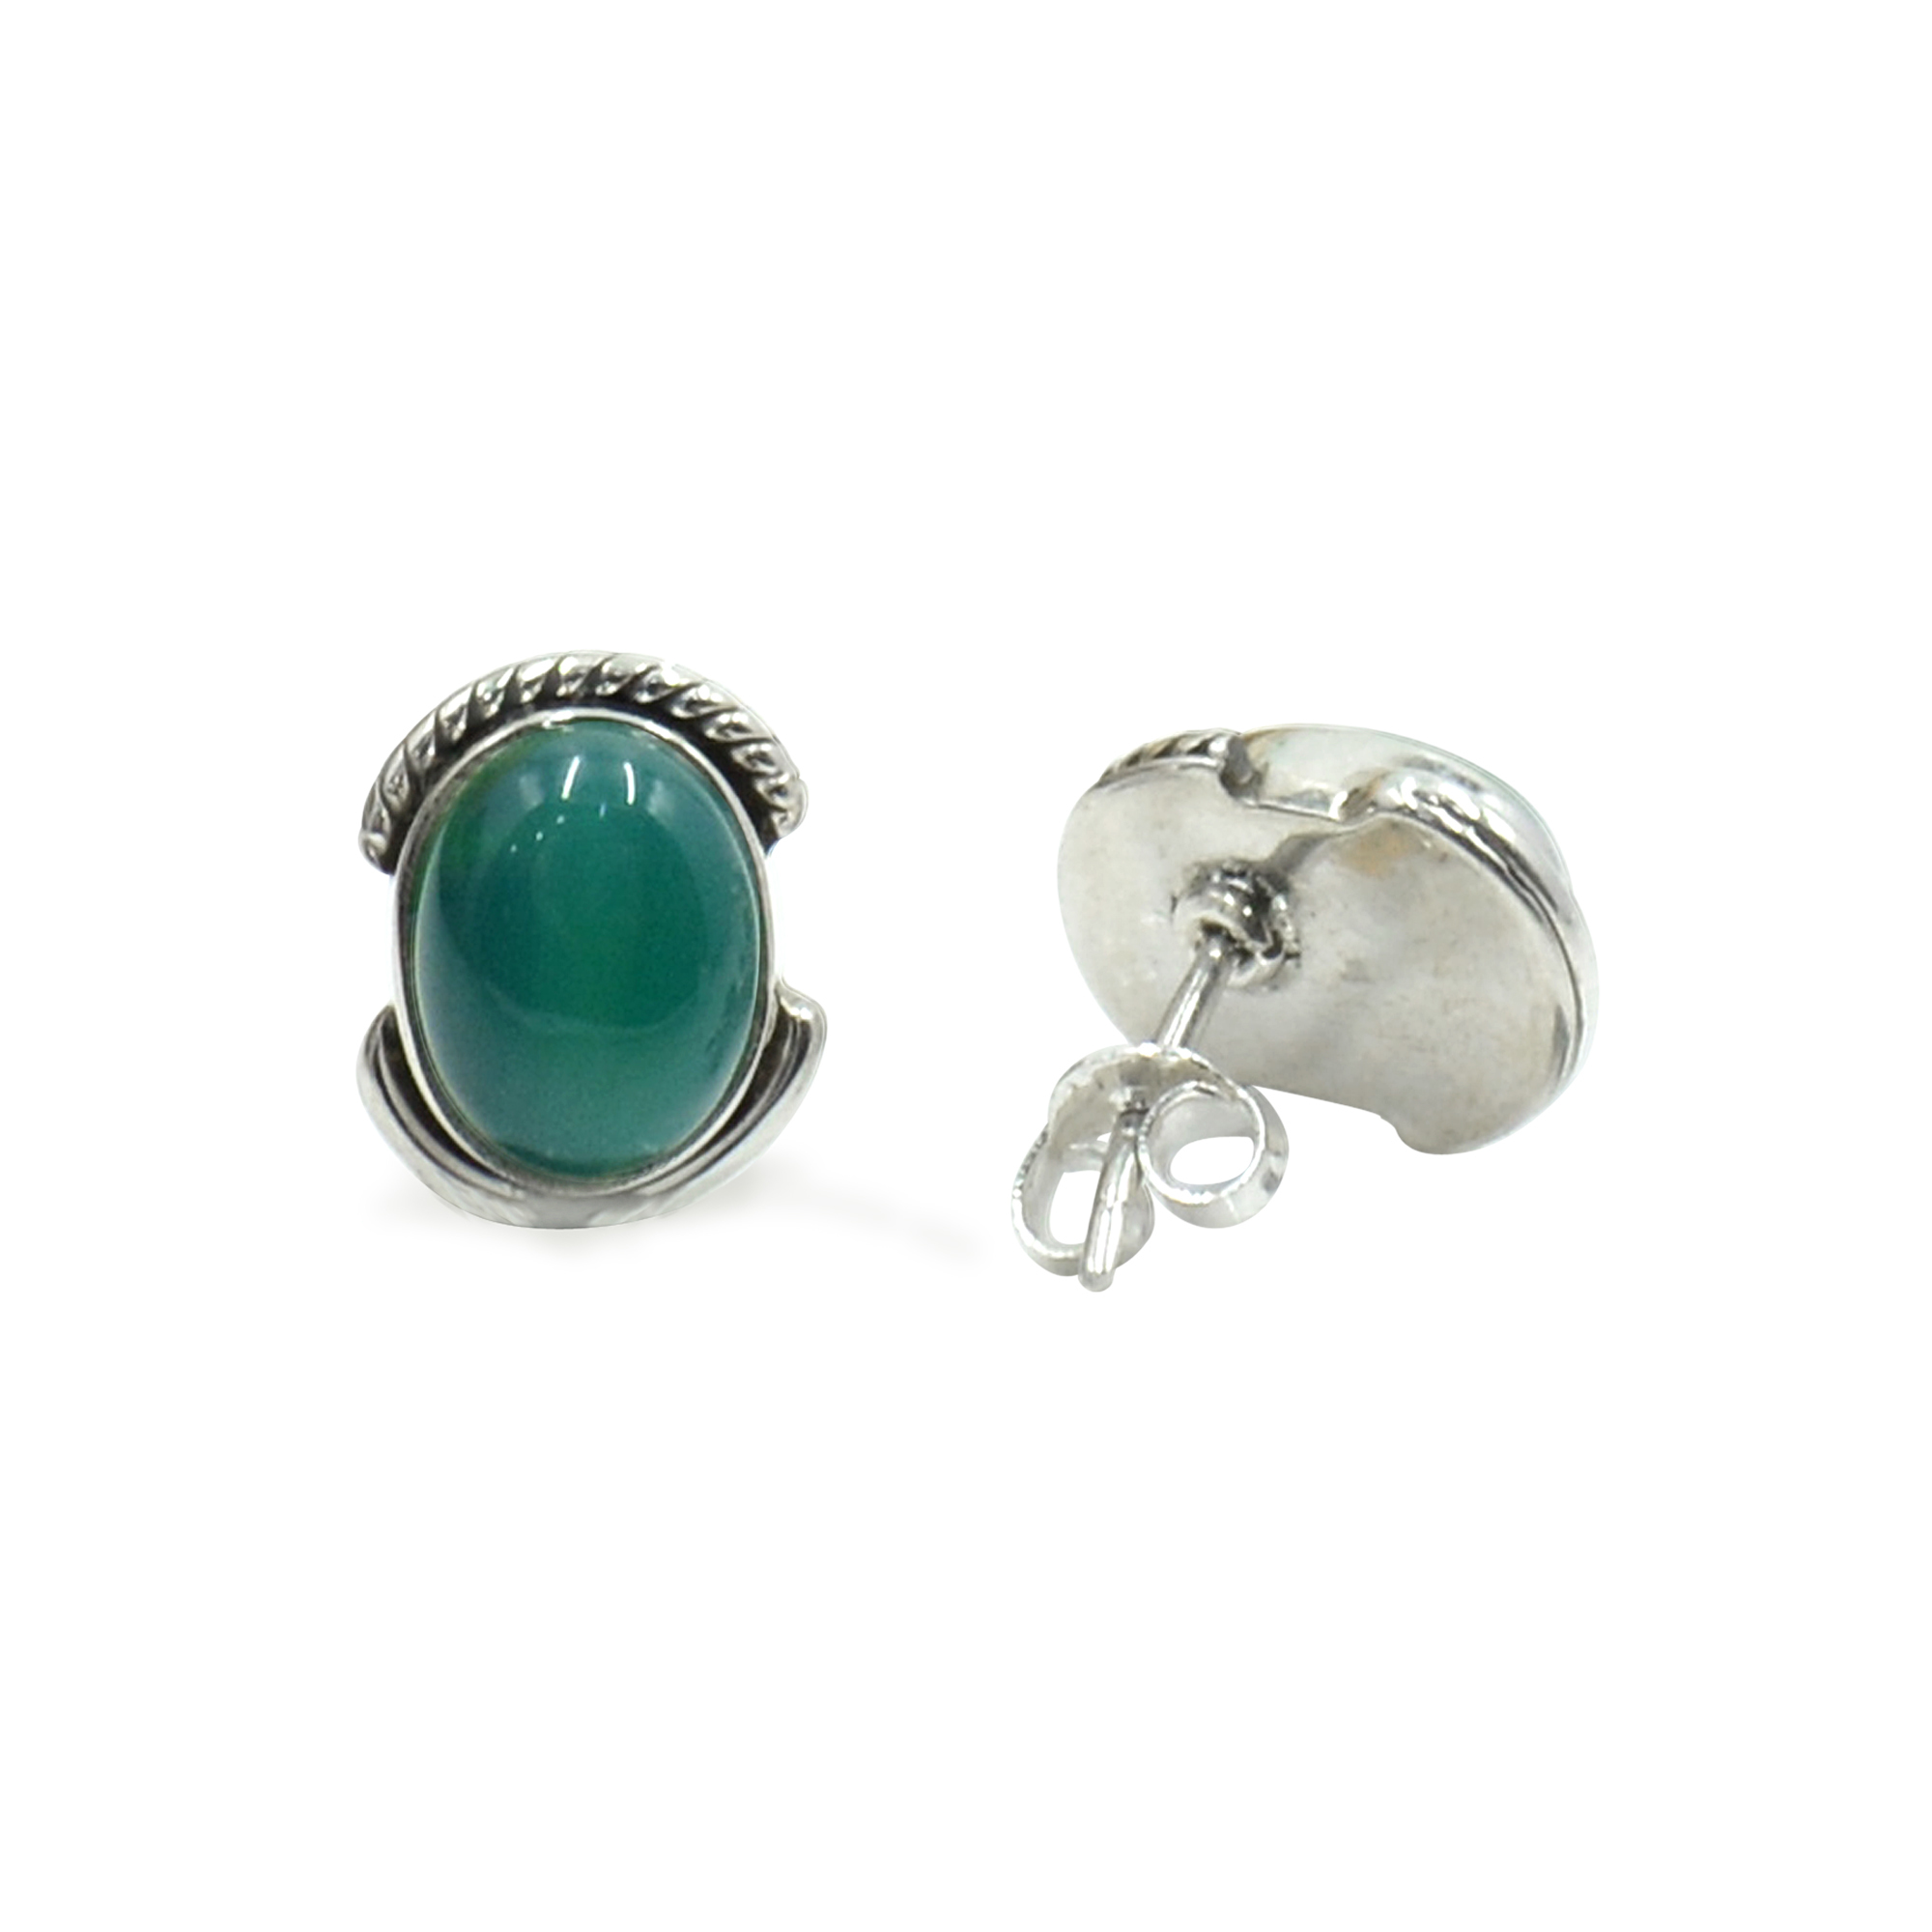 Silvesto India 925 Sterling Silver Natural Green Onyx Oval Shape Gemstone Stud Earring For Women